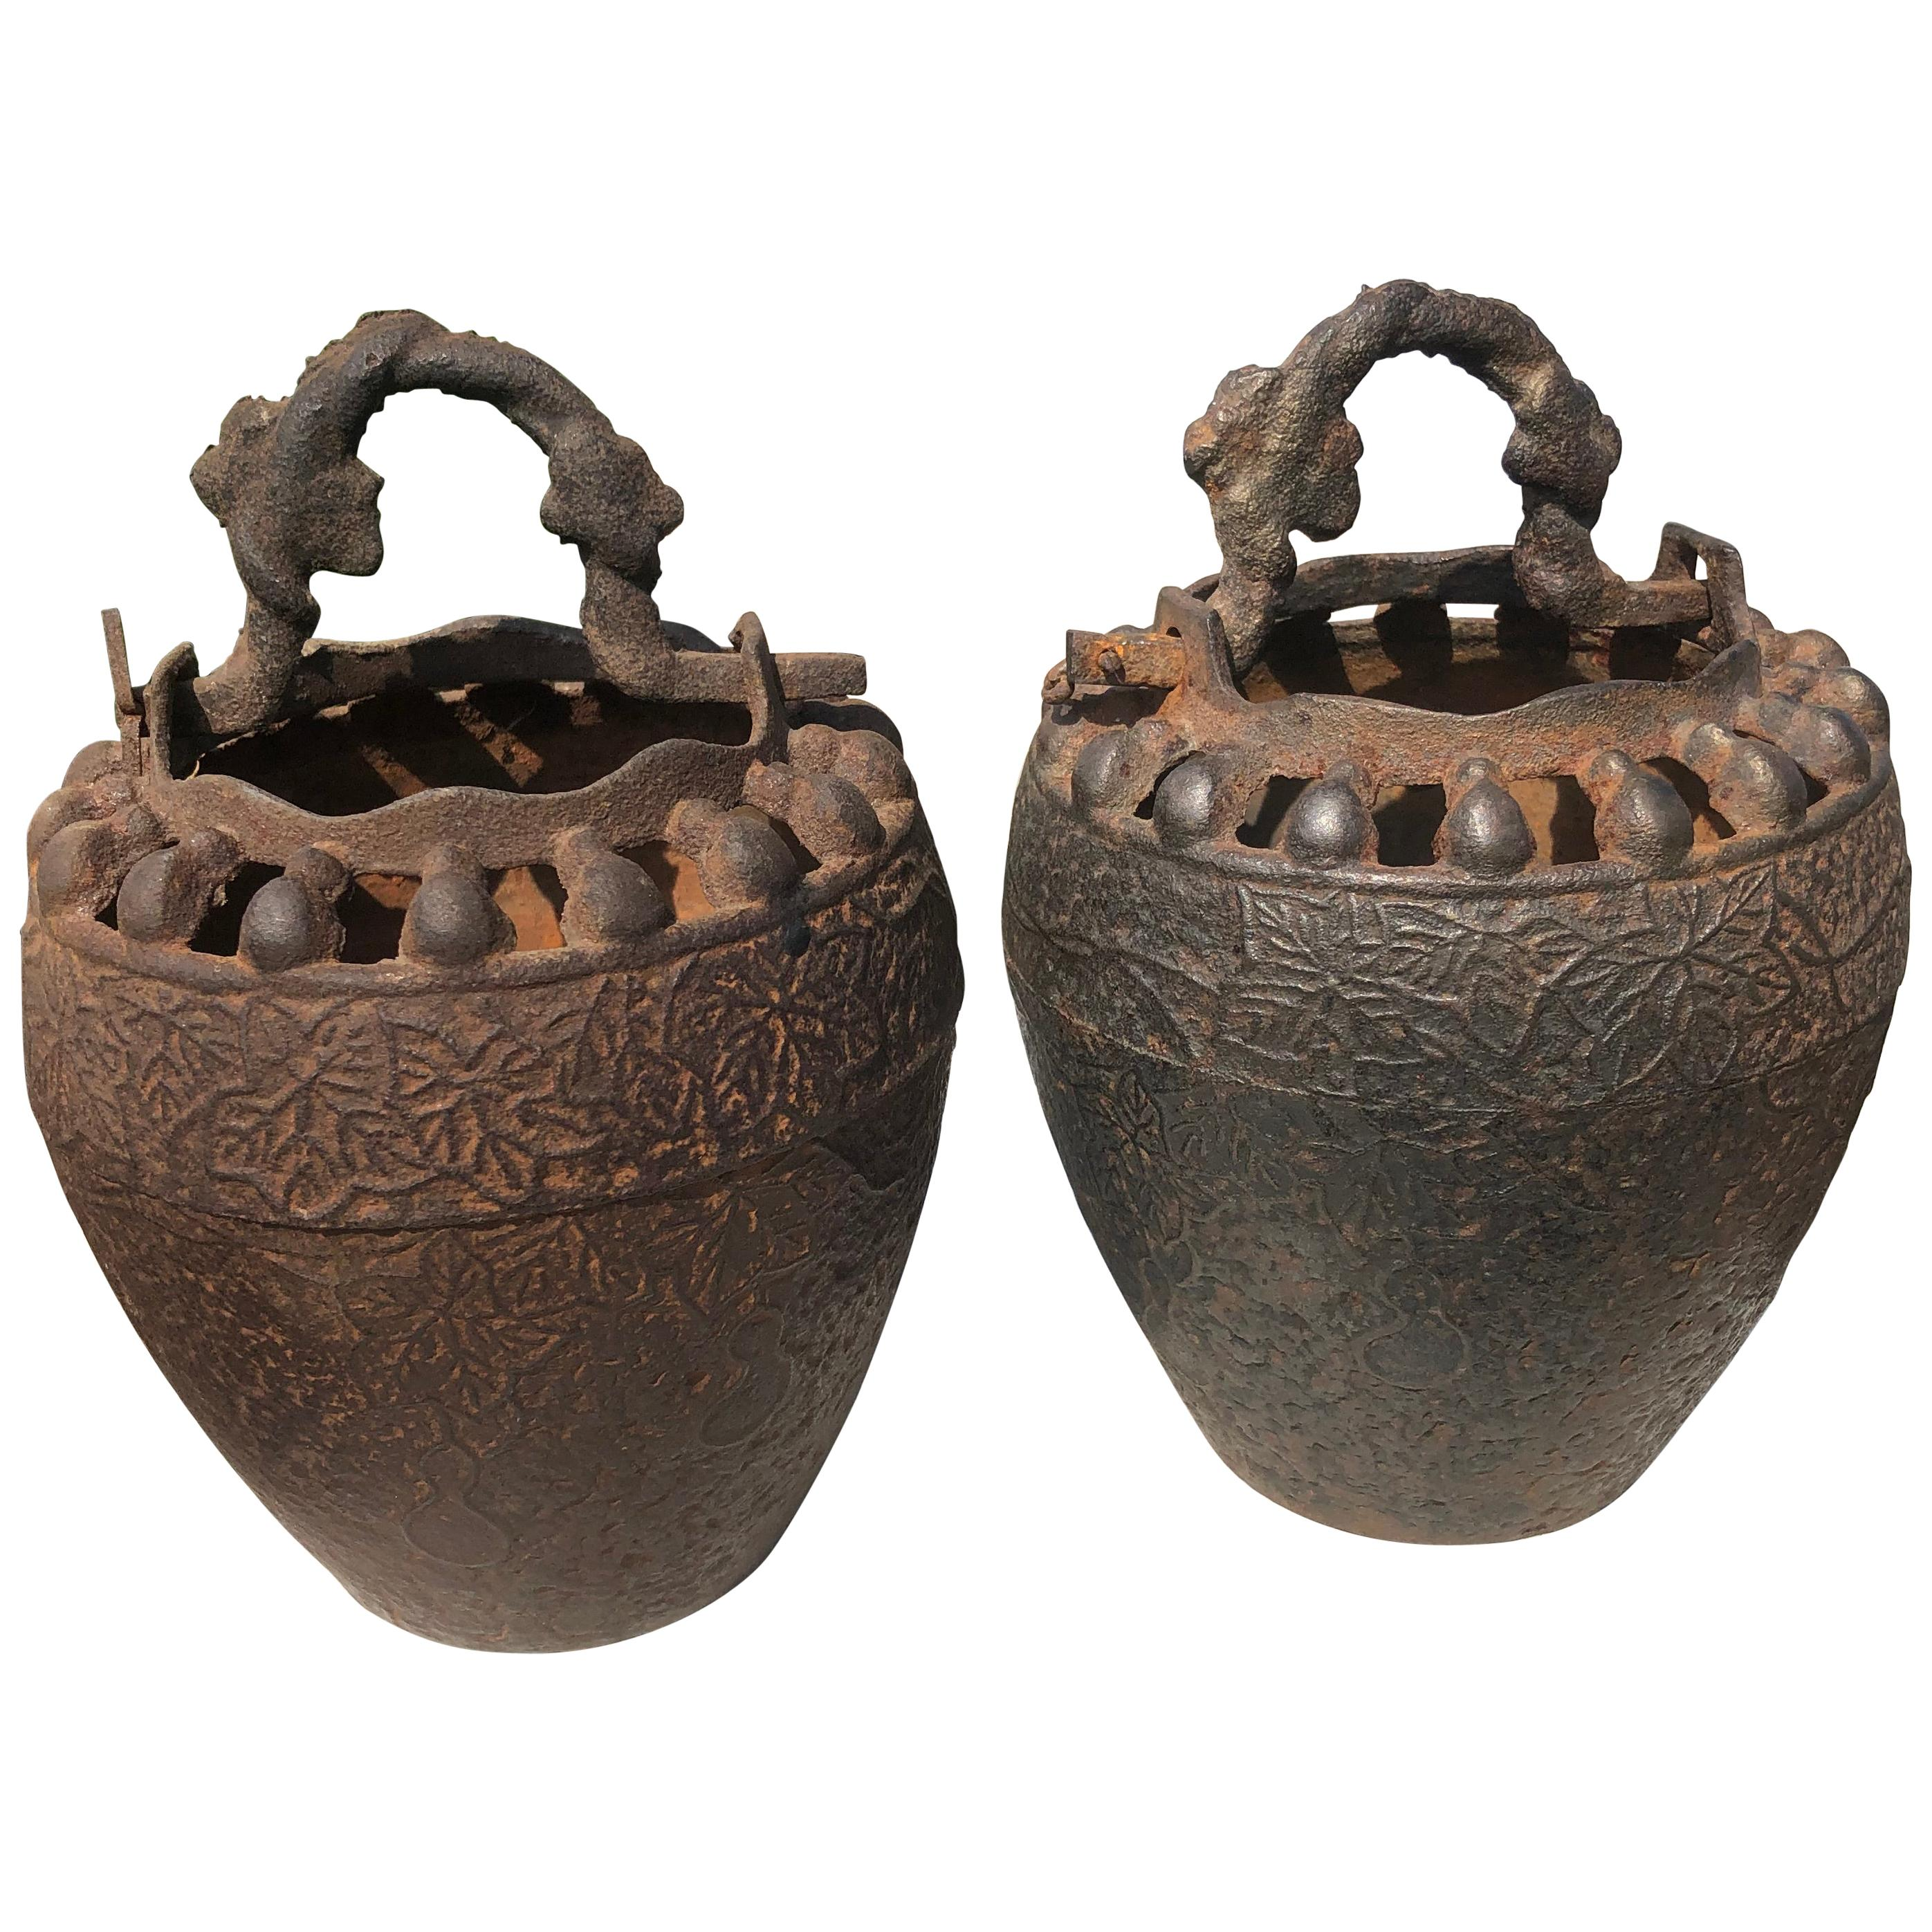 Japanese Pair Antique Iron Root Handled Hanging Flower Vases, 19th Century